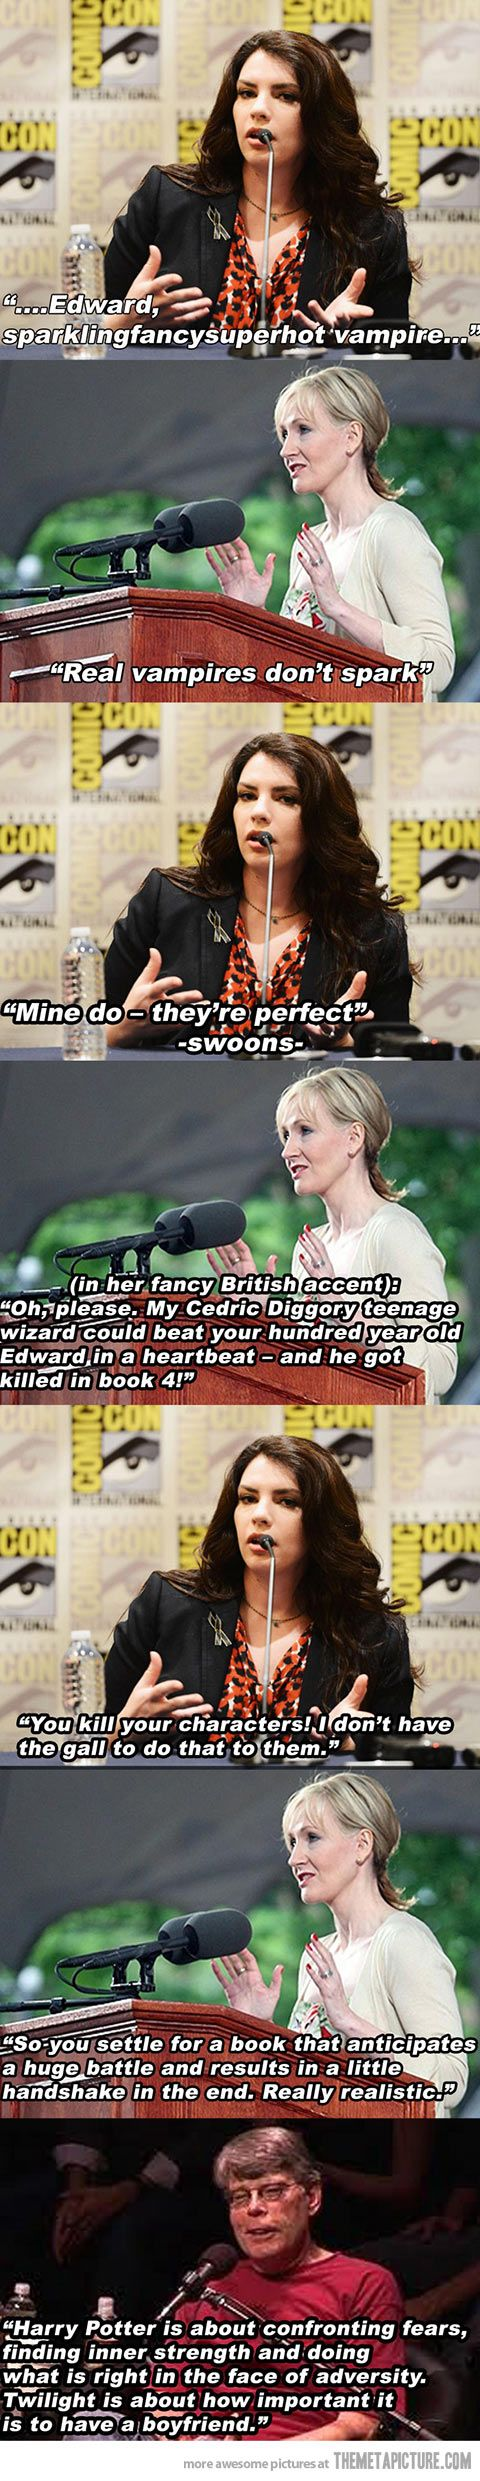 Stephanie Meyer vs. J.K. Rowling…Correct on so many levels. love the Stephen King comment at the end!